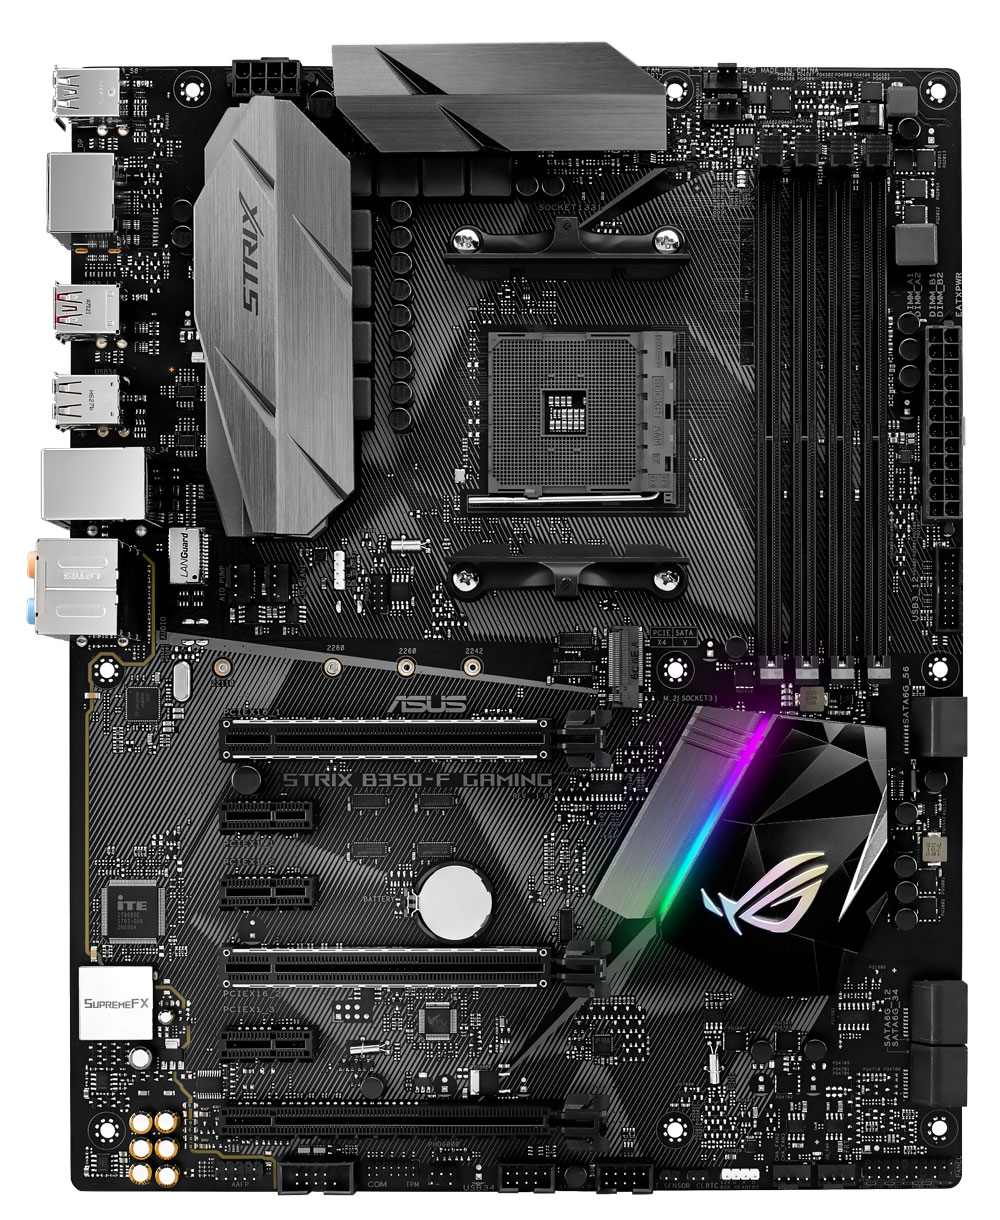 Asus Rog B350-F Gaming Motherboard - Best Deal - South Africa